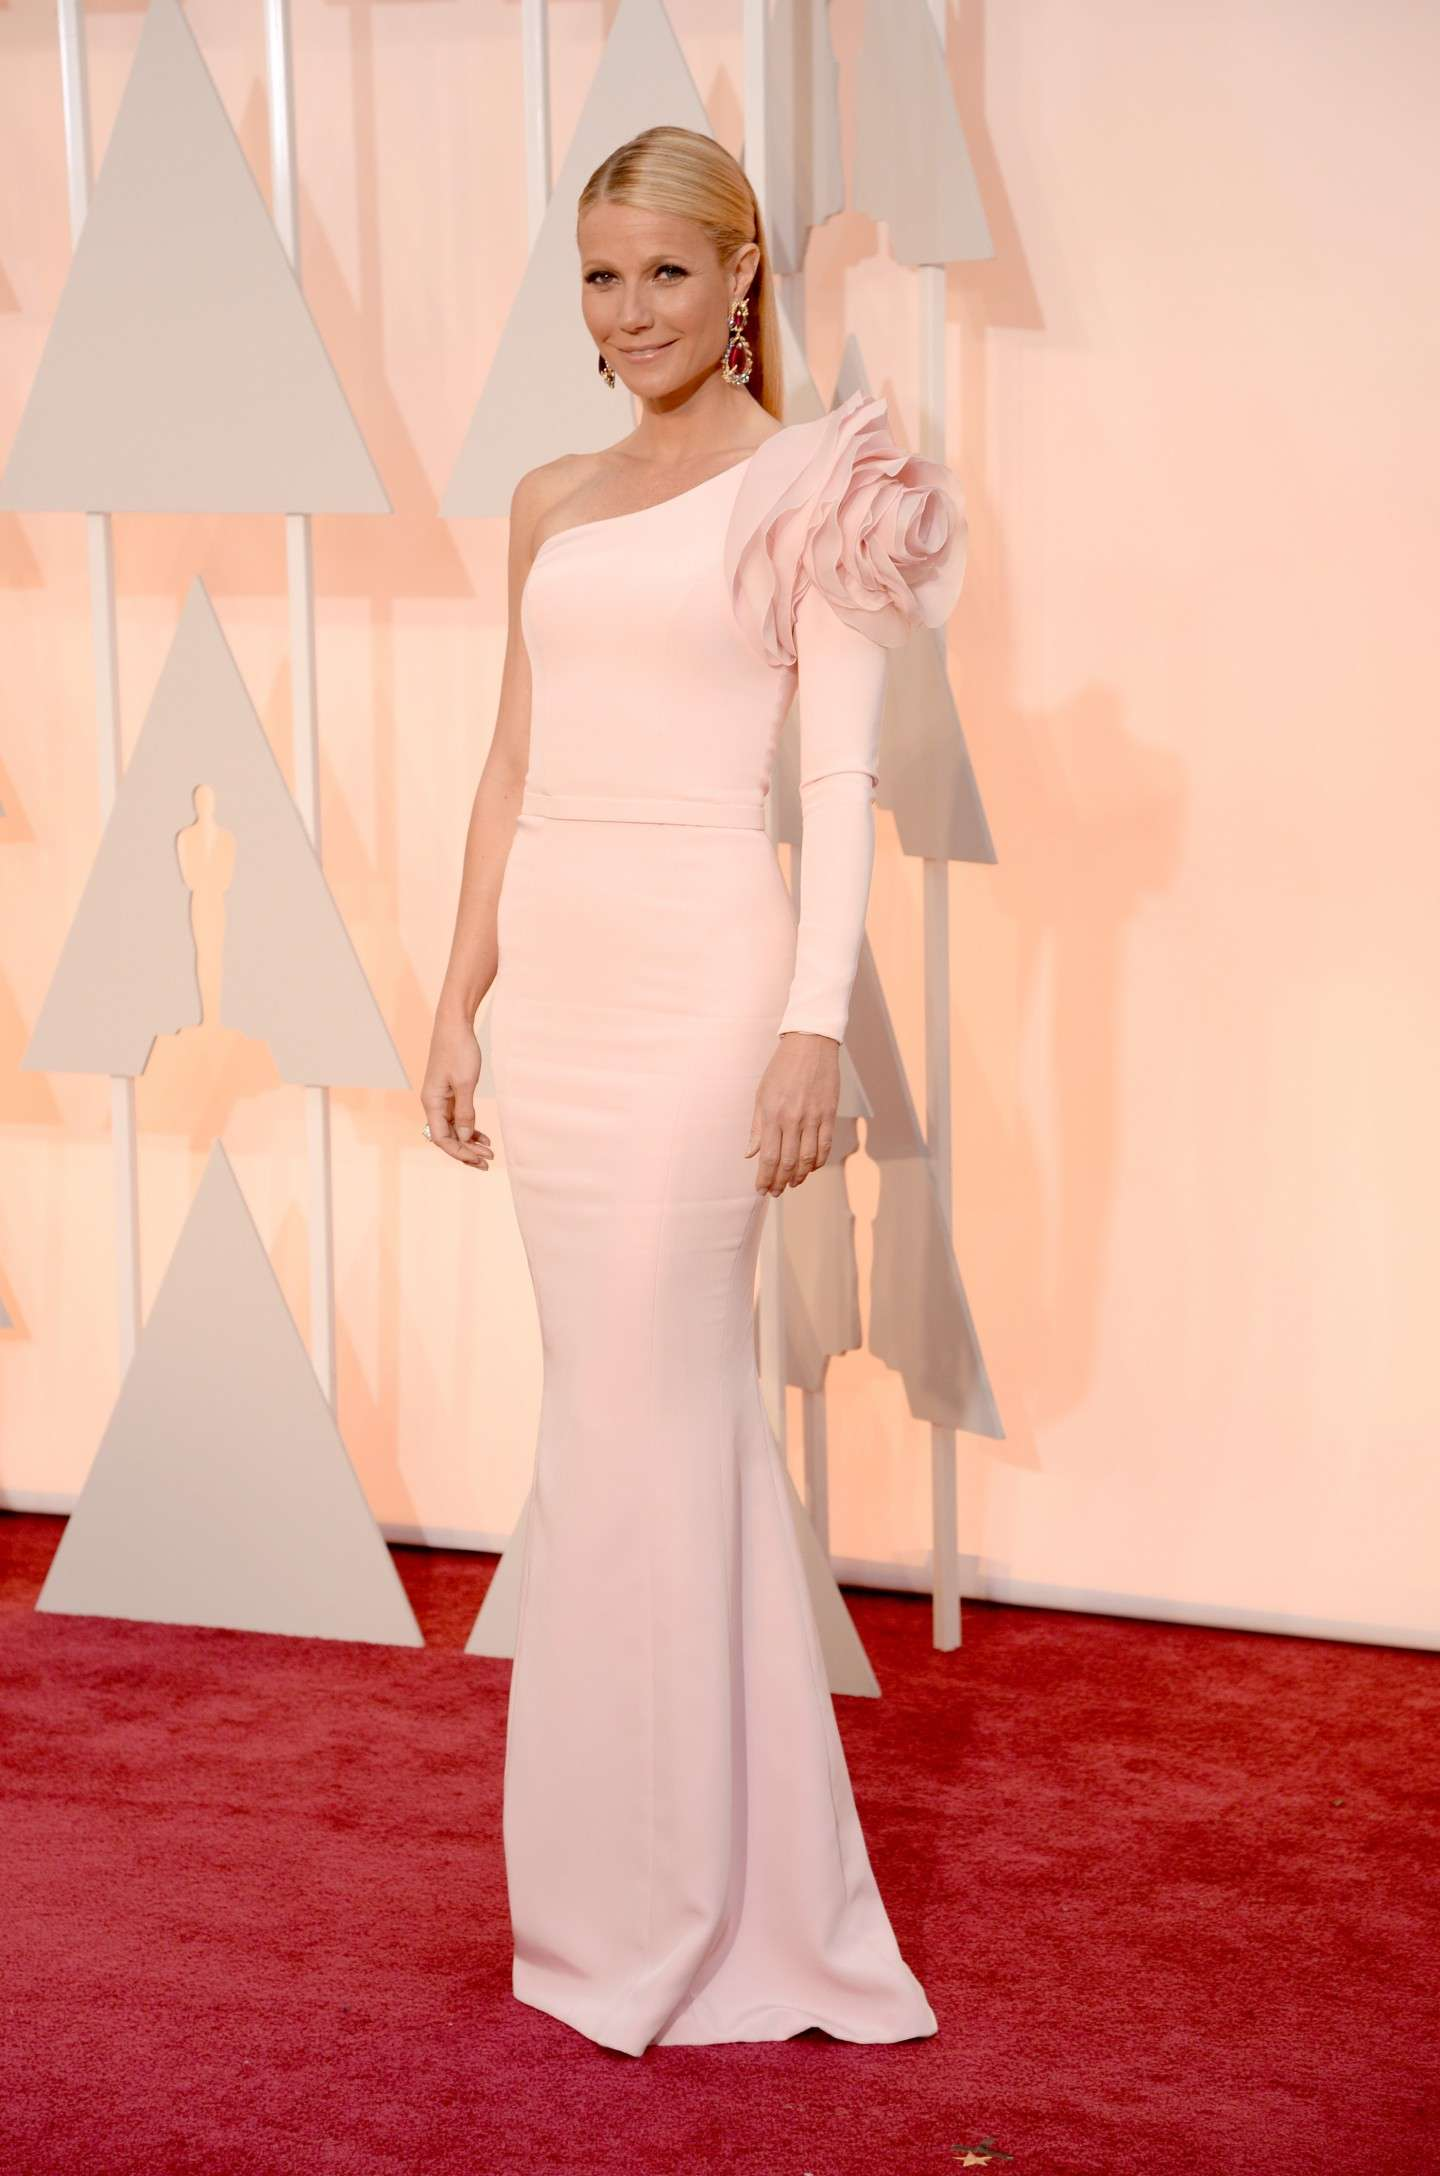 Gwyneth Paltrow in rosa cipria